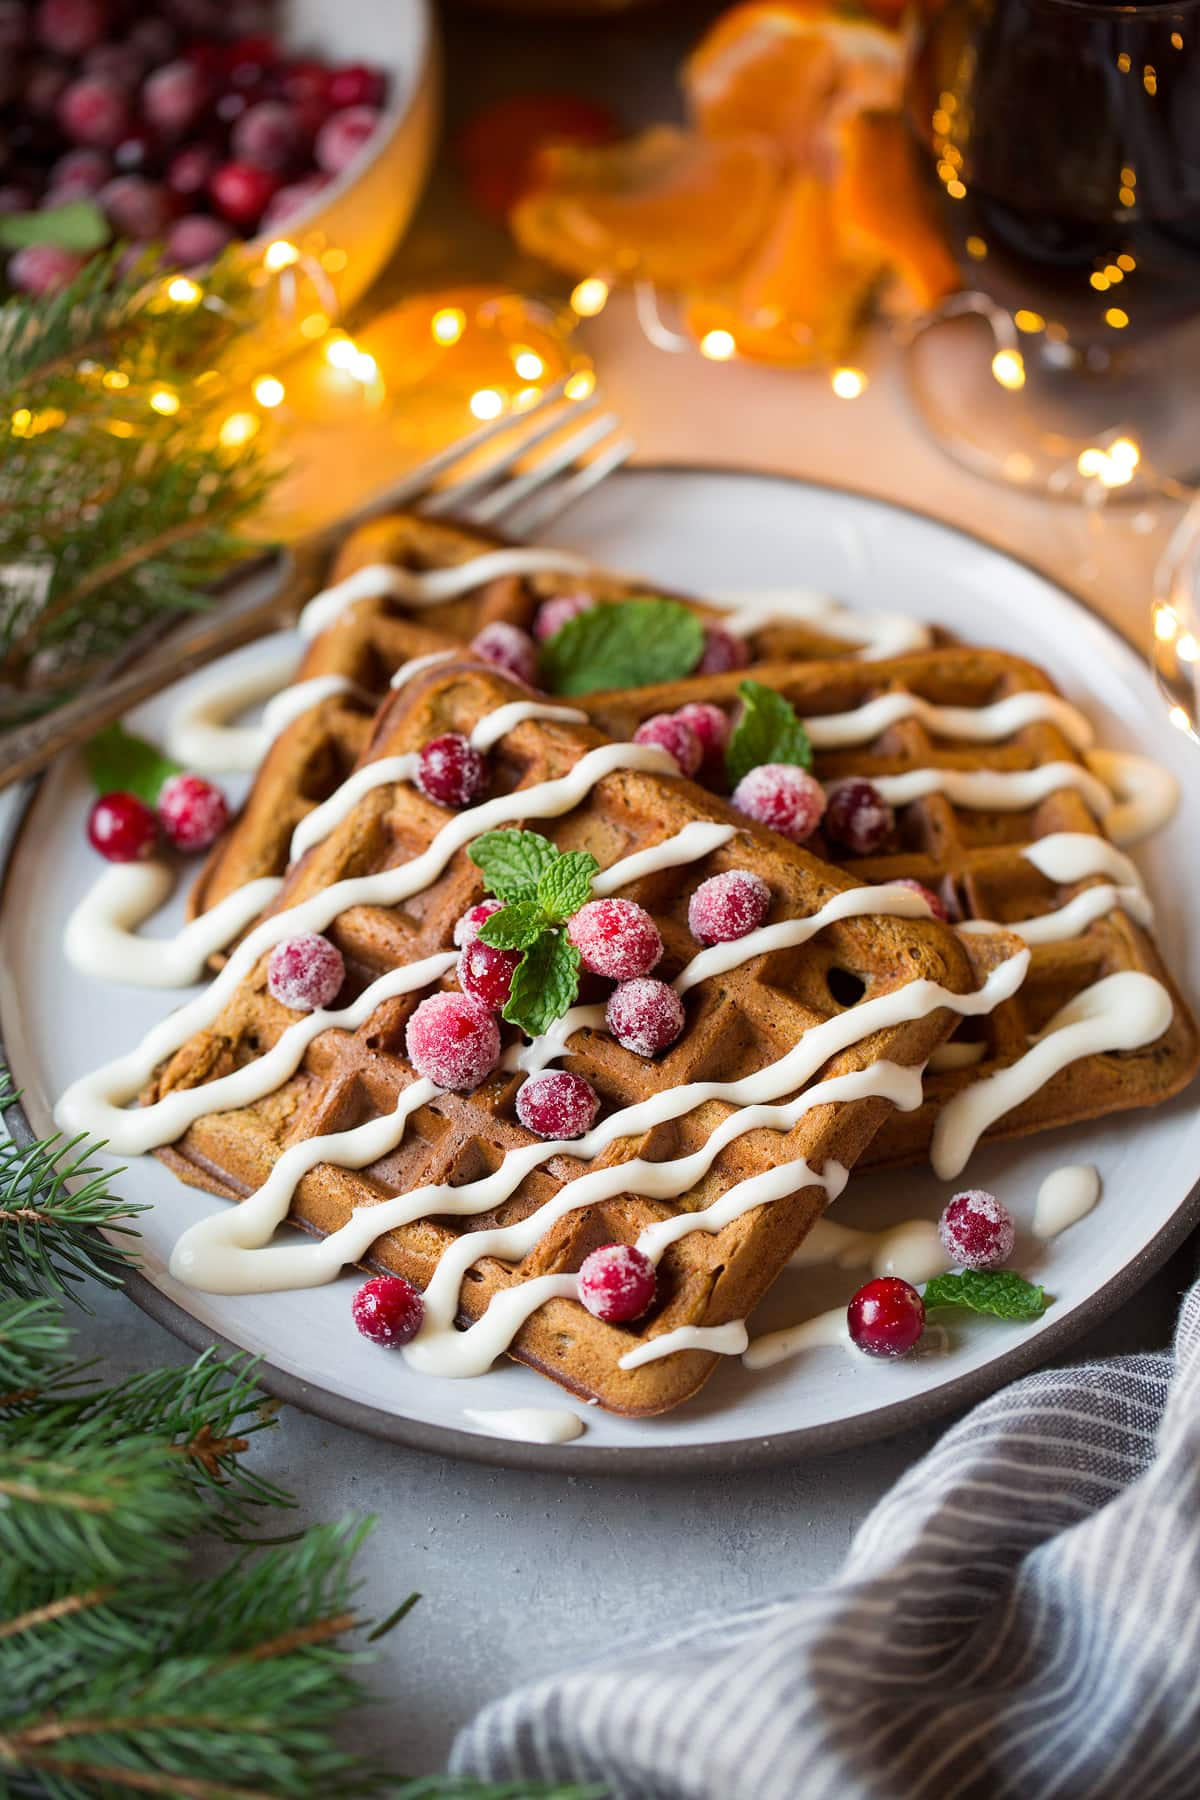 Gingerbread Waffles for Christmas breakfast. Shown here on a serving plate with pine and Christmas lights around waffles.